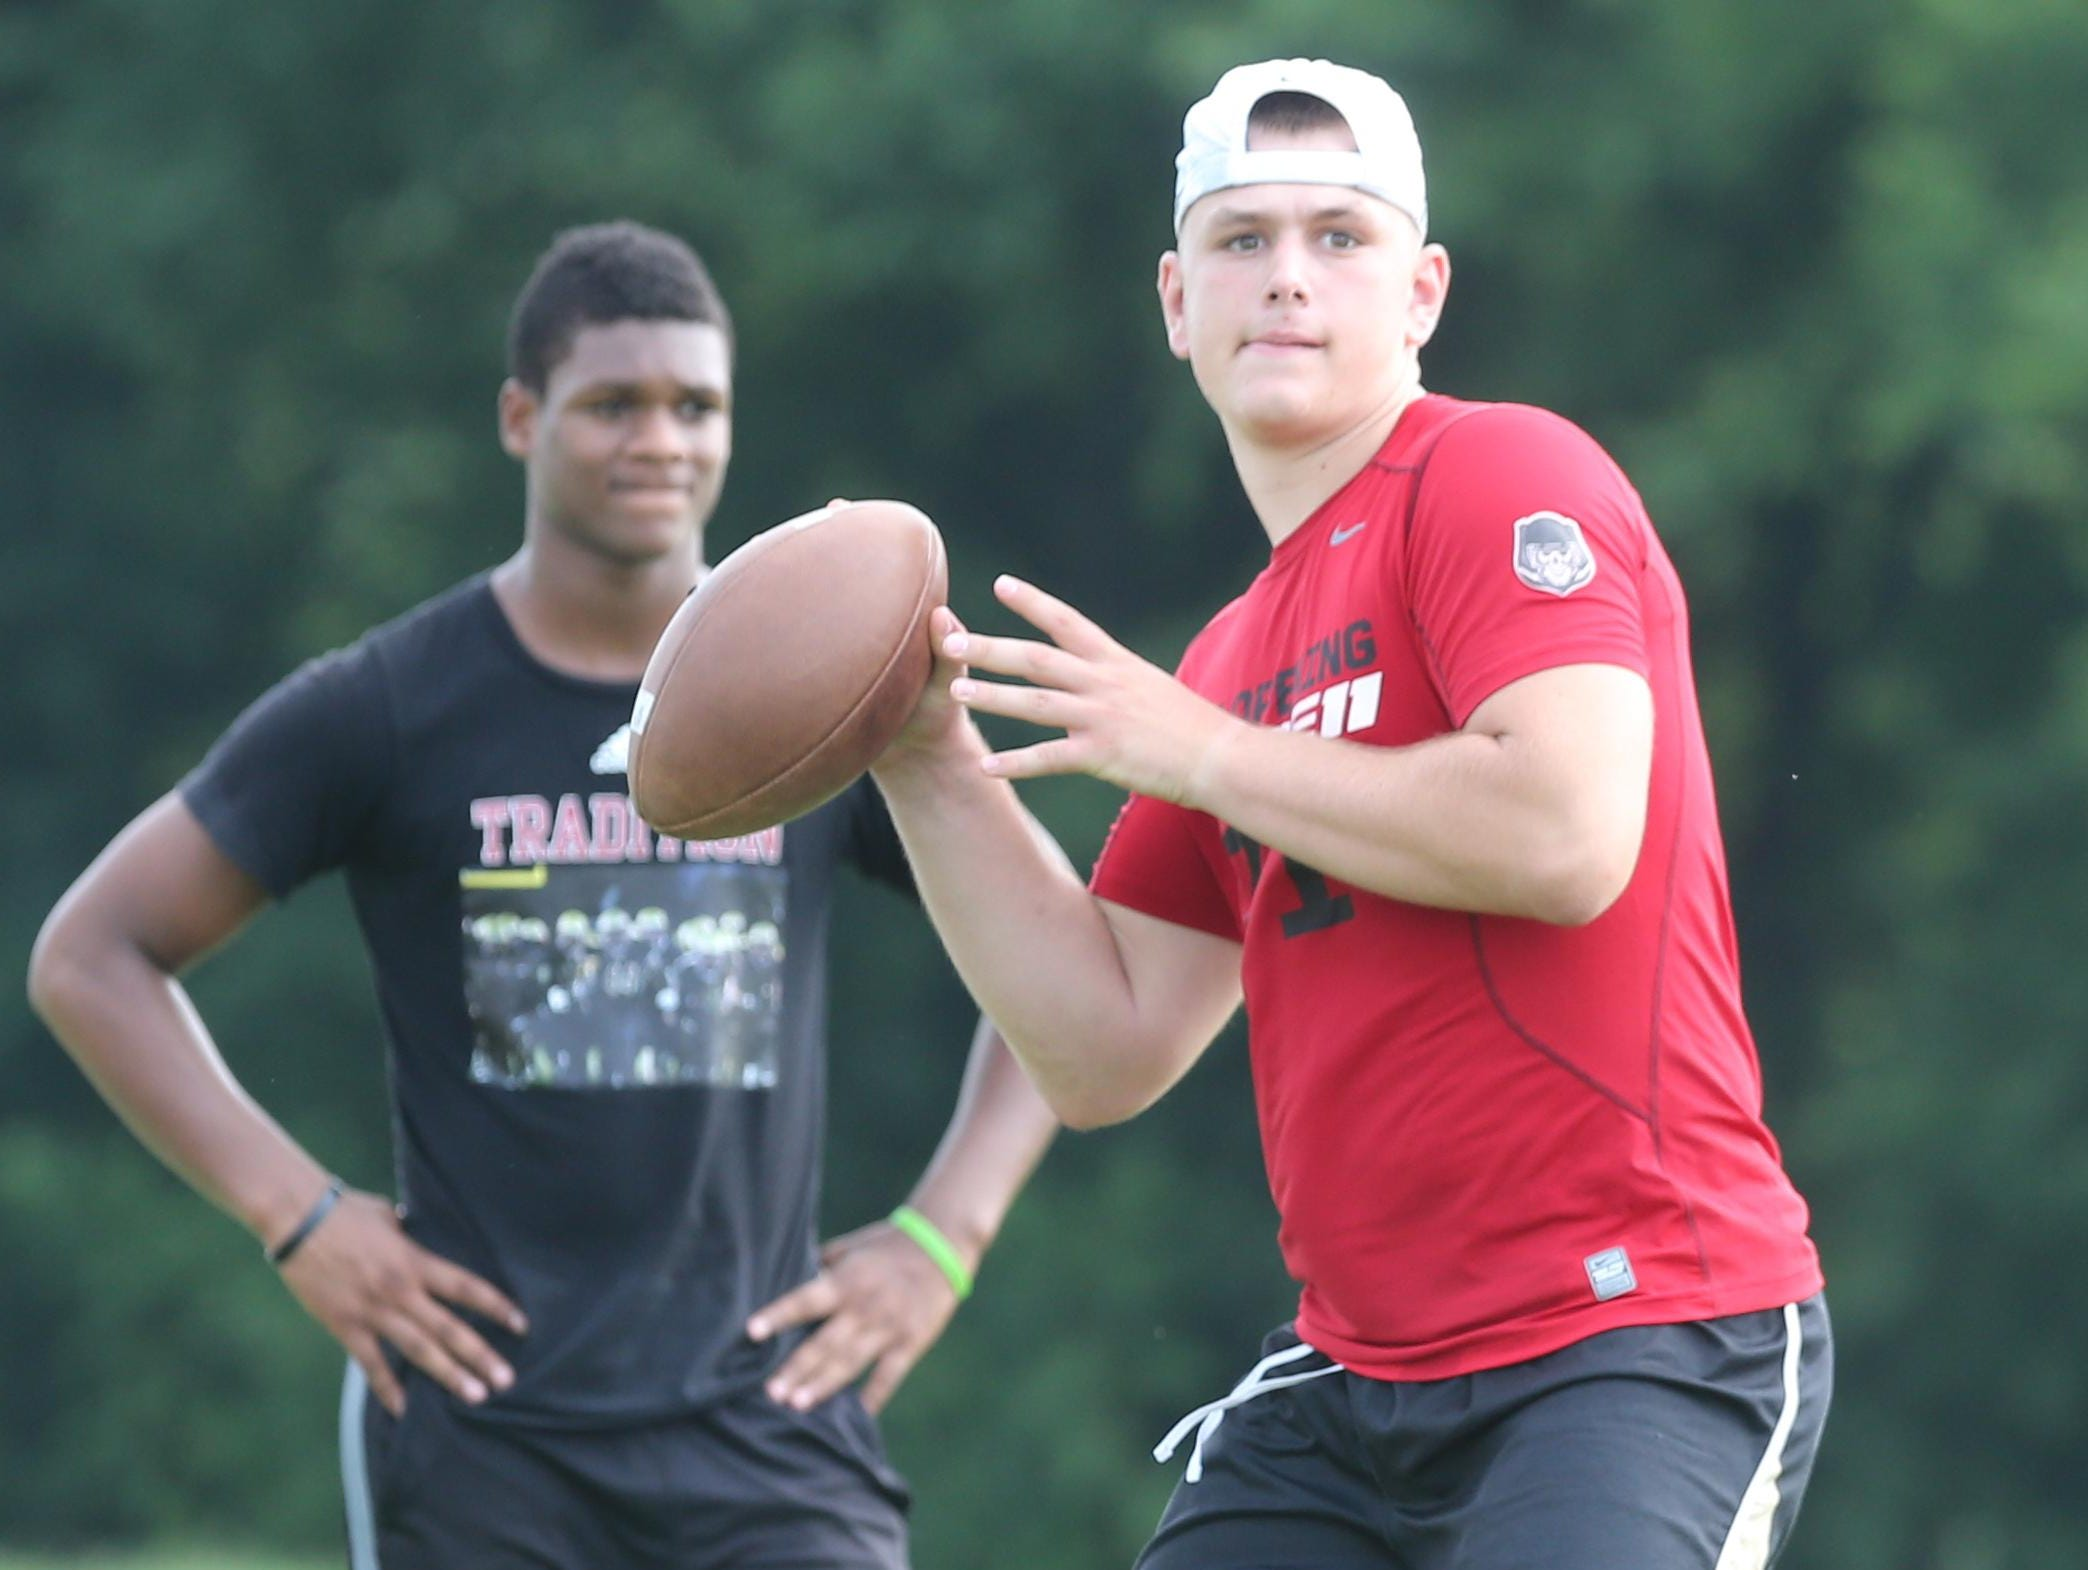 Riverdale quarterback Brandon Bea throws a pass during Monday's passing practice as teammate Christian Souffront watches. Bea transferred from Washington state.